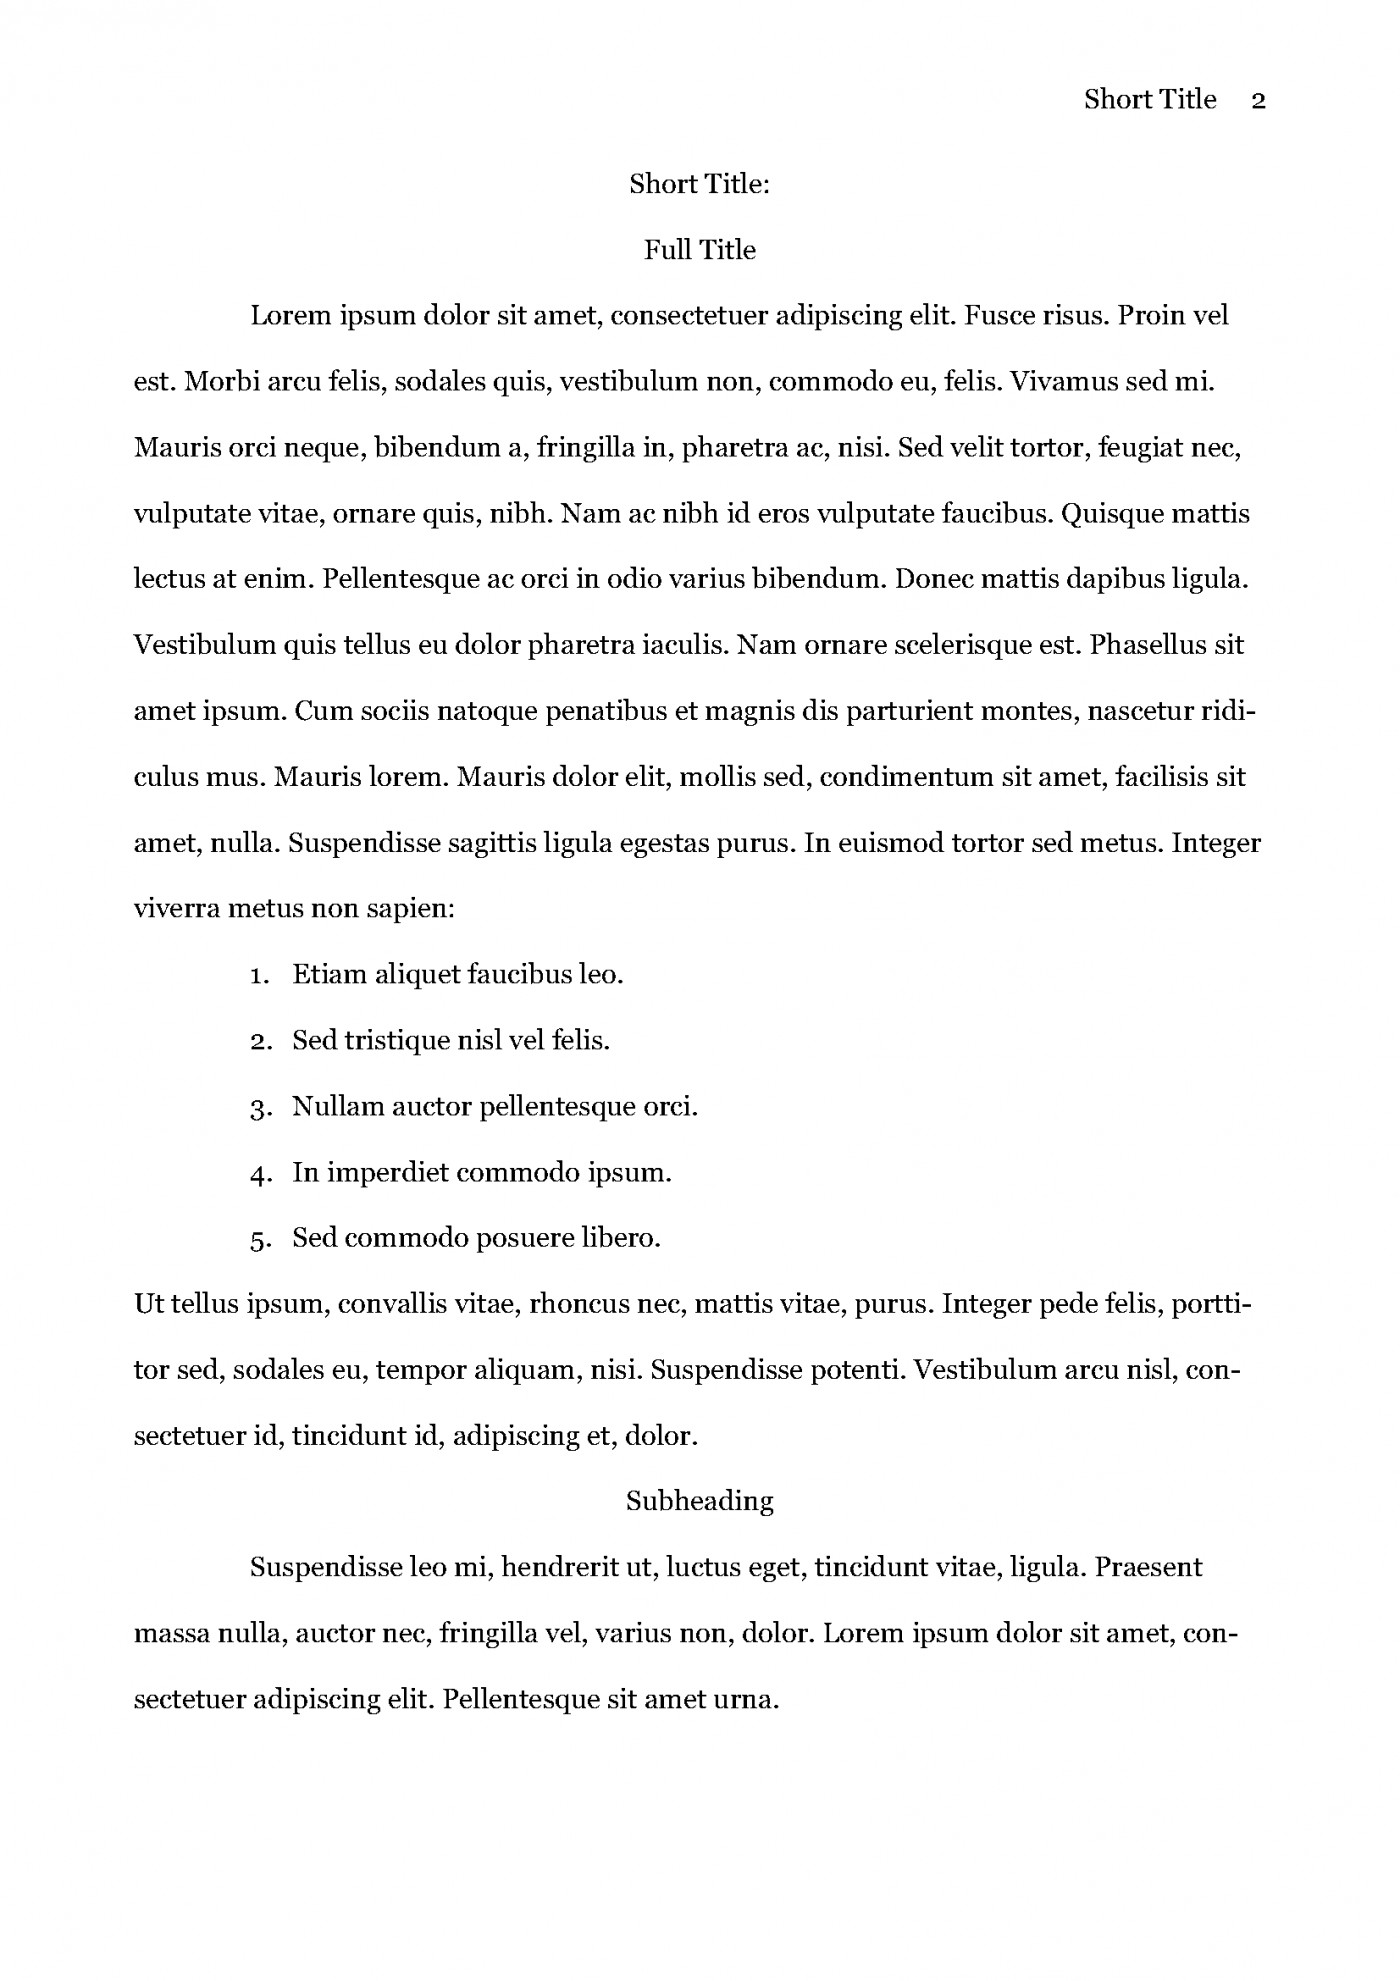 017 Essay Example Apa Sample Page 2 Format Stupendous Template Short Title 6th Edition 1400